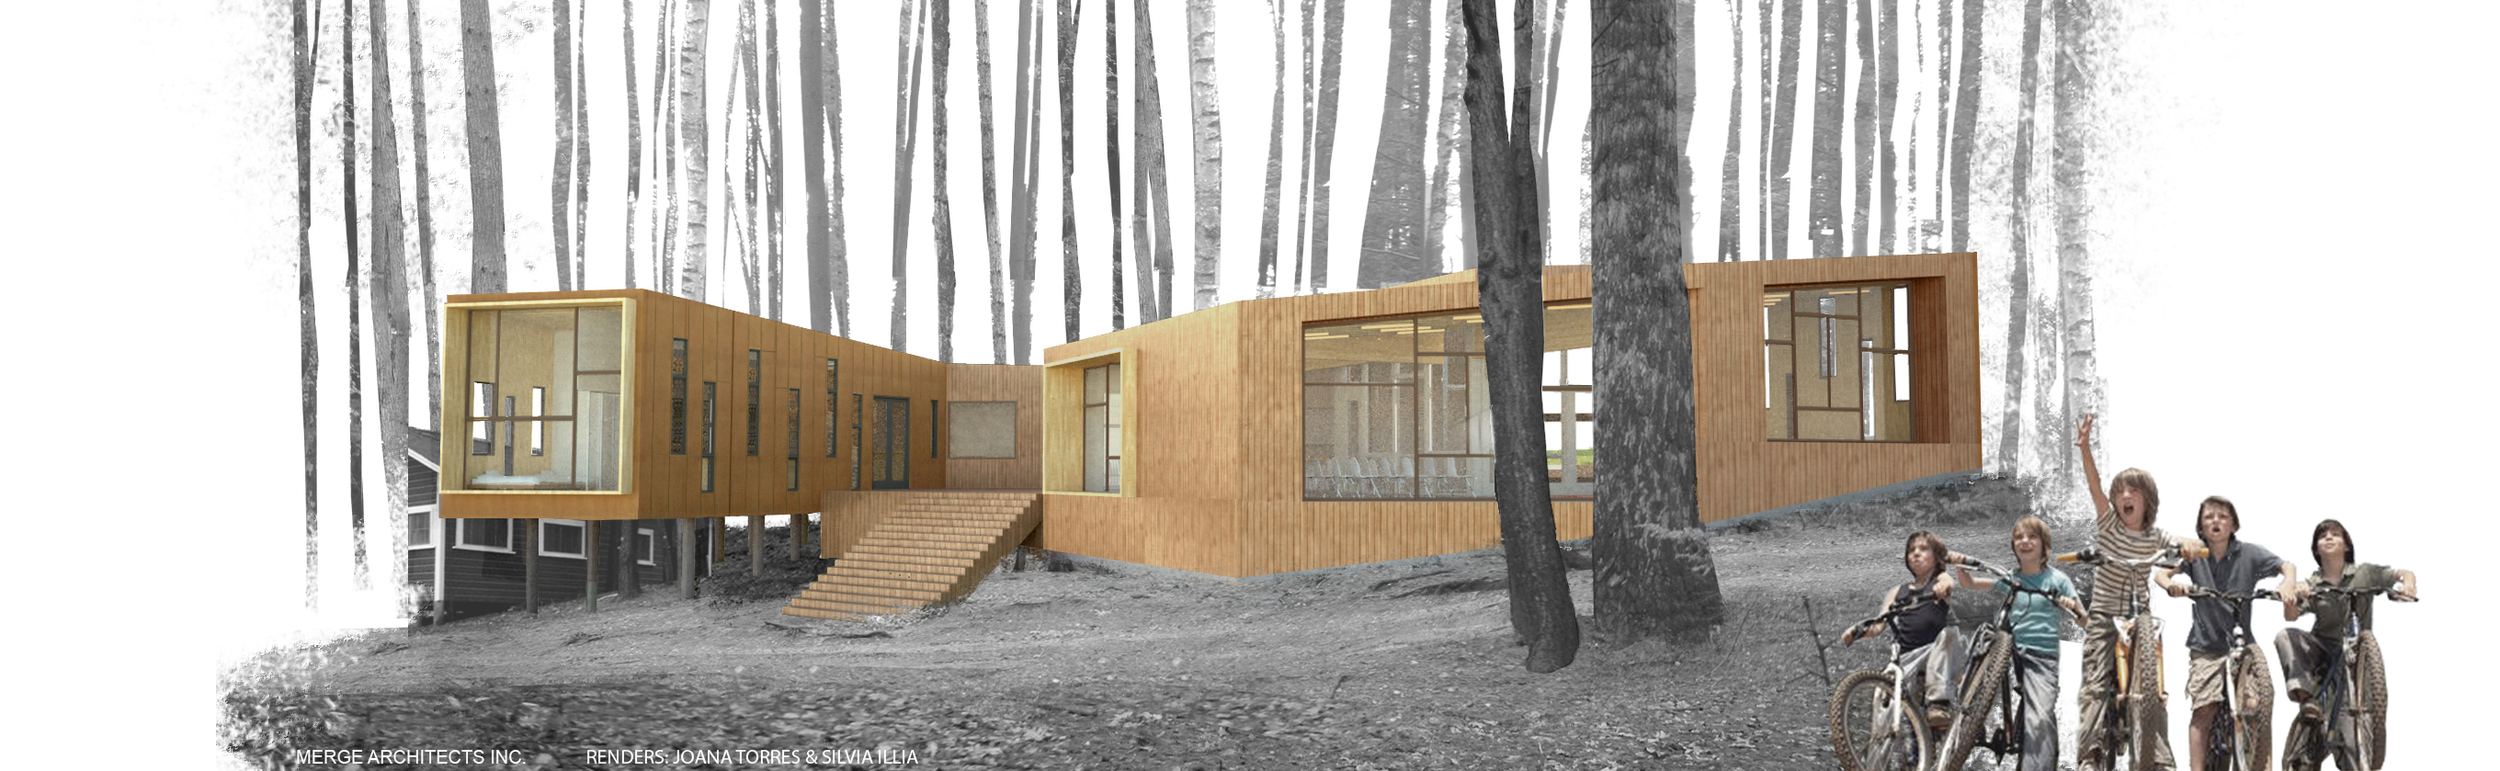 RENDERINGS FOR MERGE ARCHITECTS